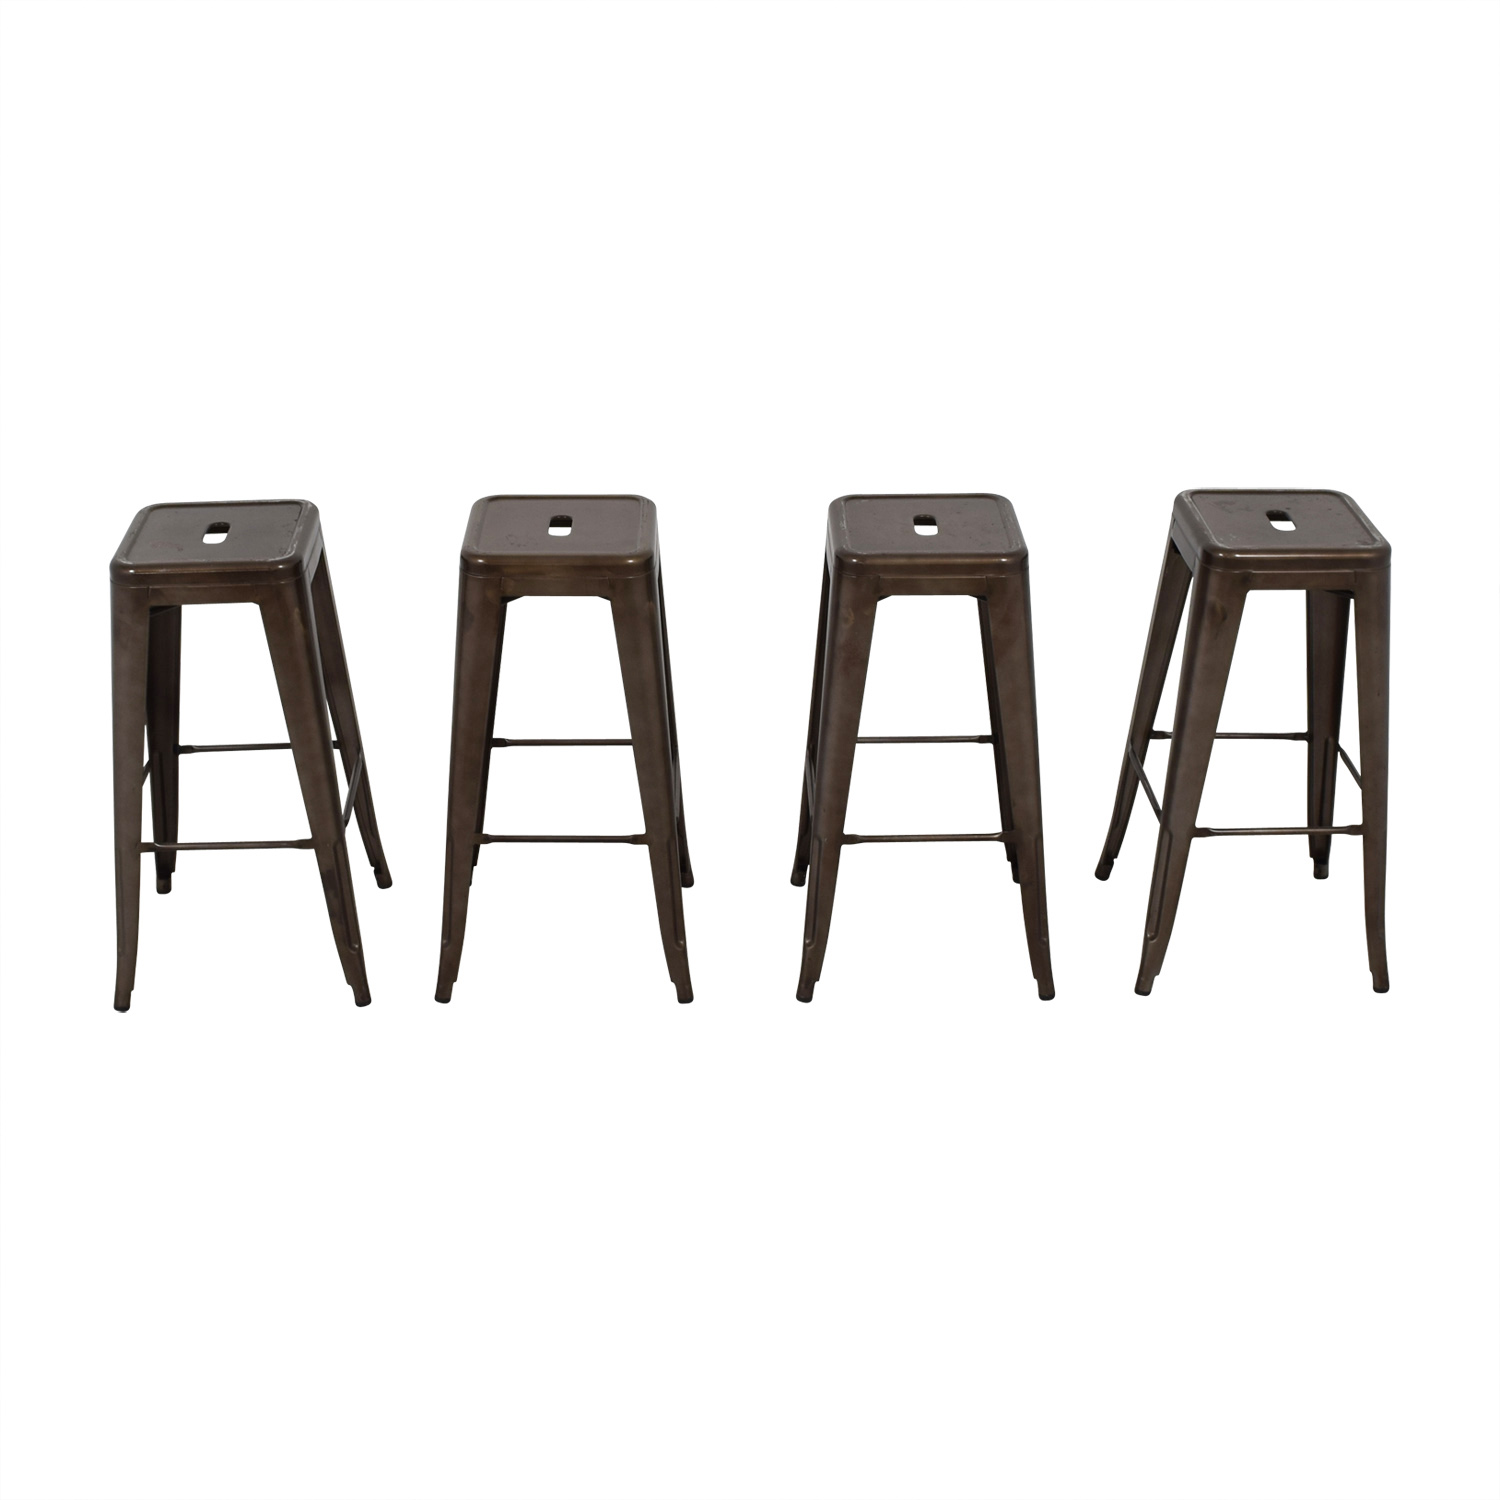 shop Tabouret-Style Industrial Rustic Distressed Metal Bar Stools  Sofas